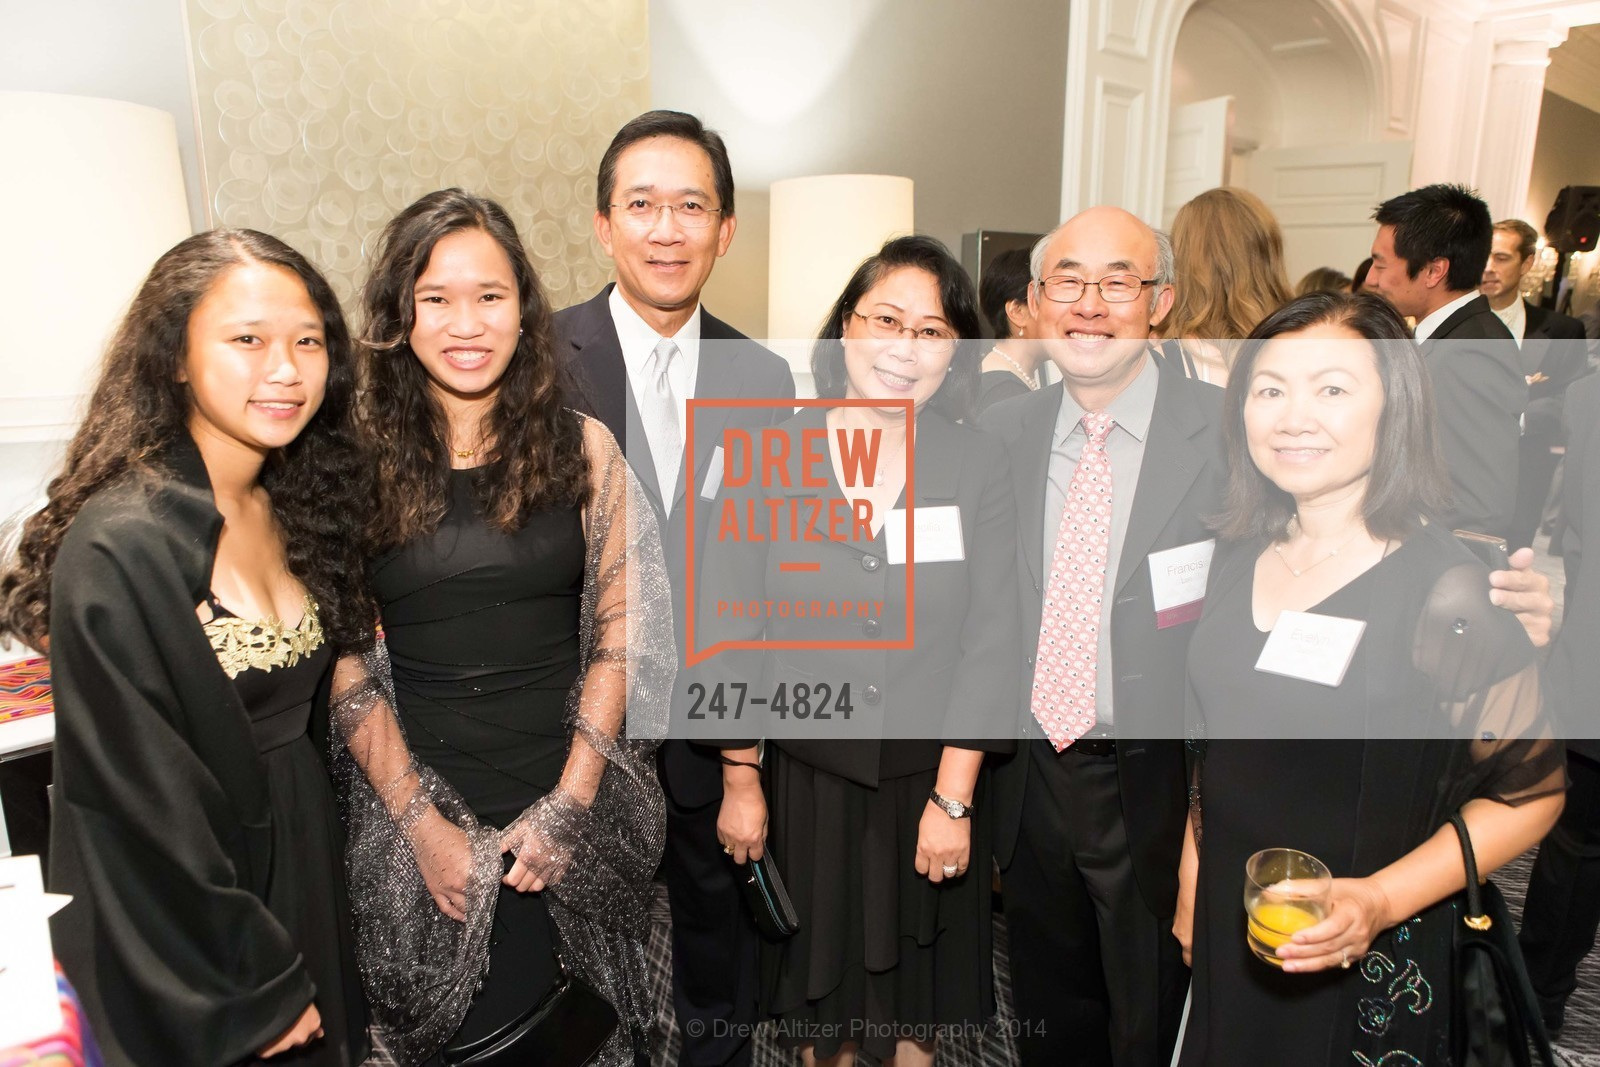 Karly Chin, Kerry Chin, Keith Chin, Cecilia Chin, Francis Lee, Evelyn Lee, Photo #247-4824